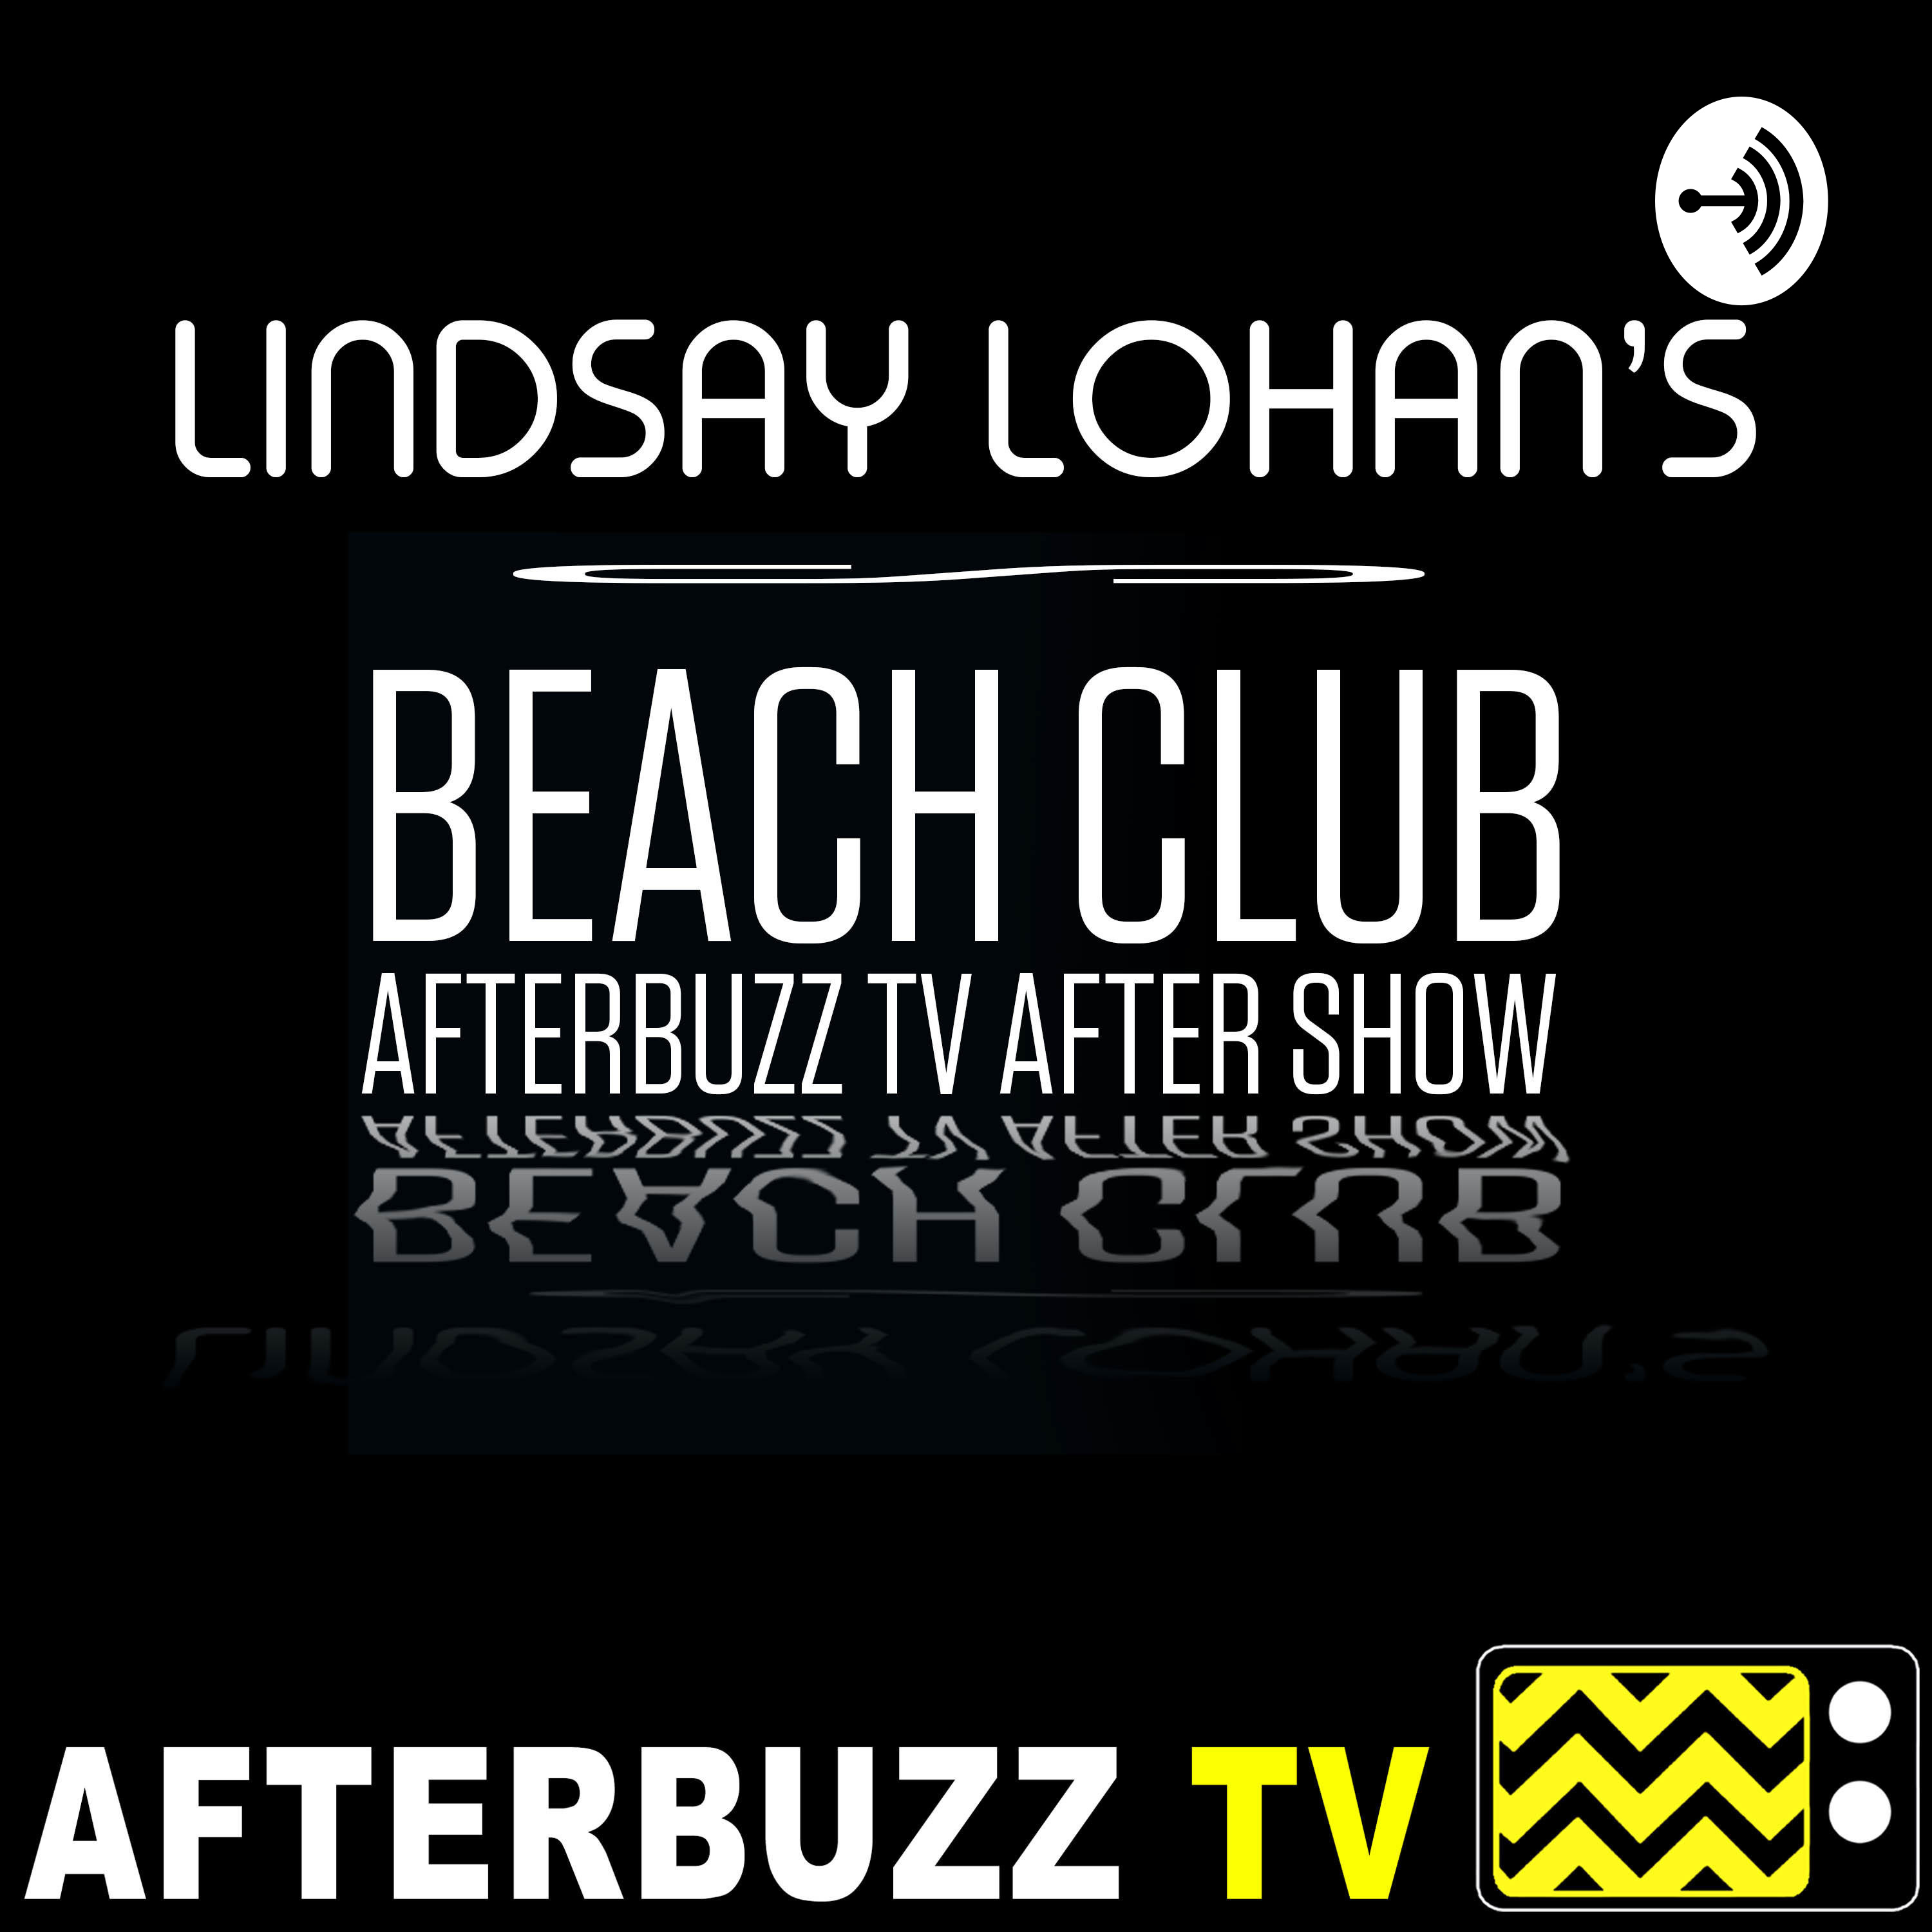 Beach Club Reviews - AfterBuzz TV